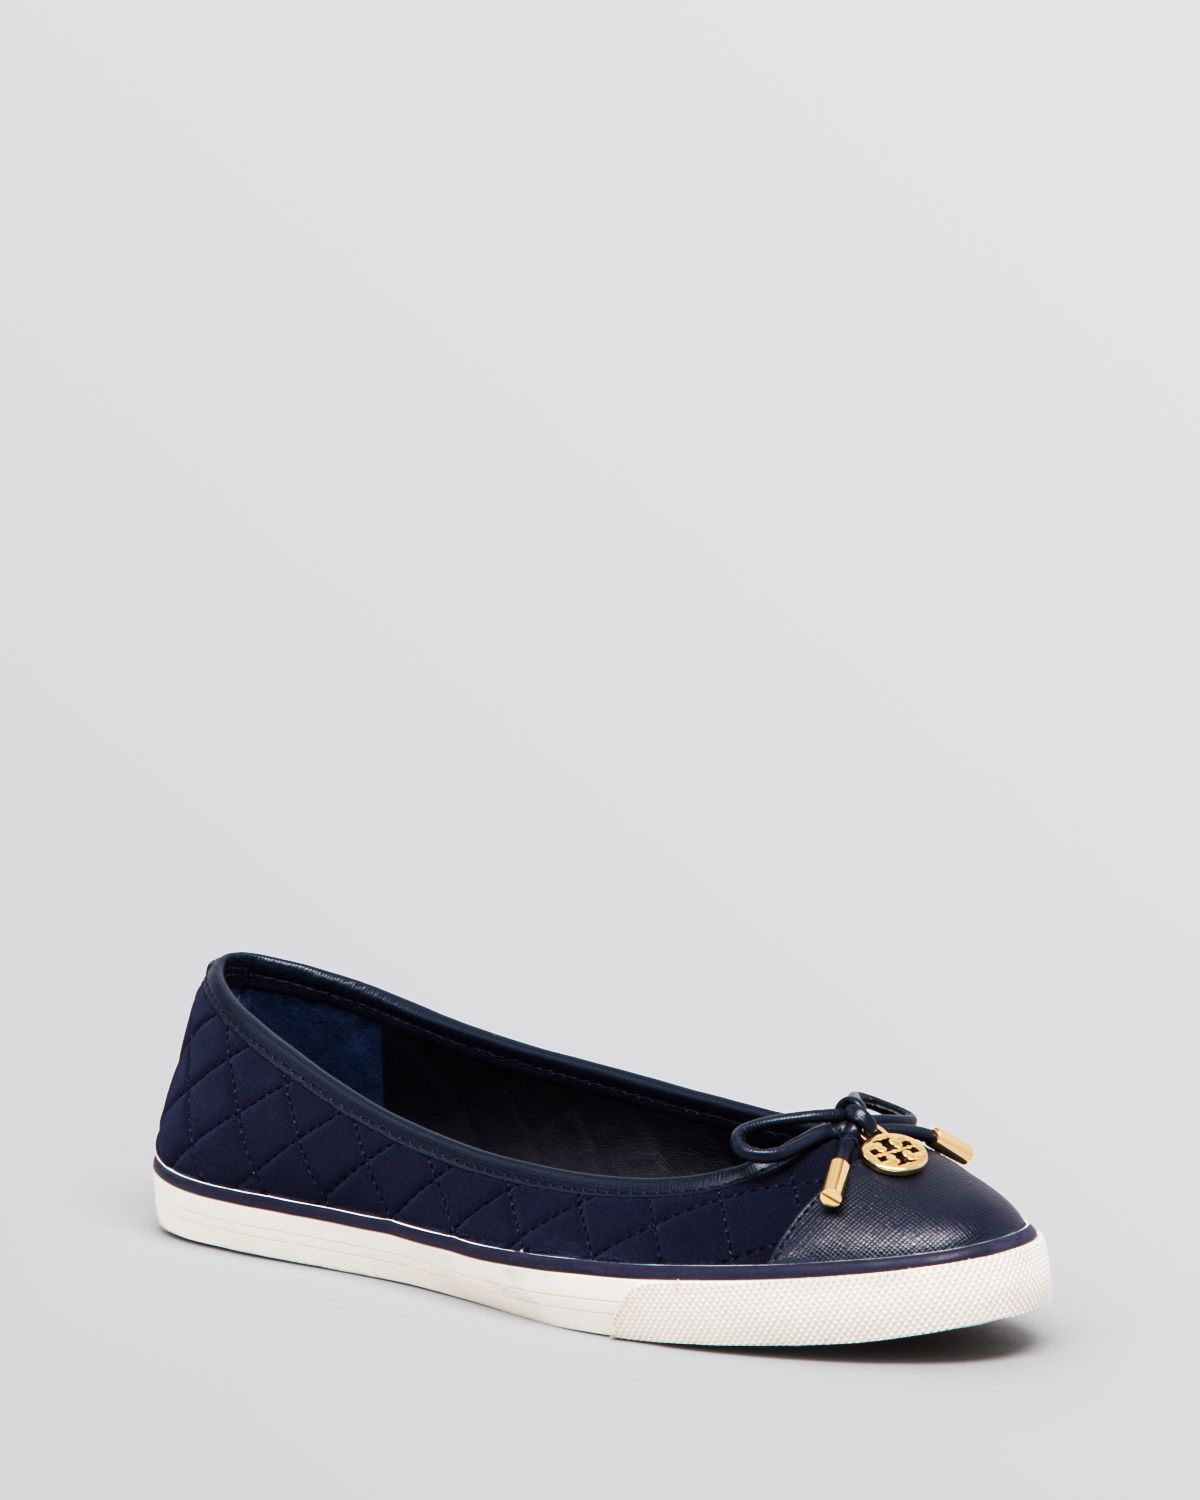 3eac59e758c28 Lyst - Tory Burch Flat Slip On Quilted Sneakers - Caruso in Blue